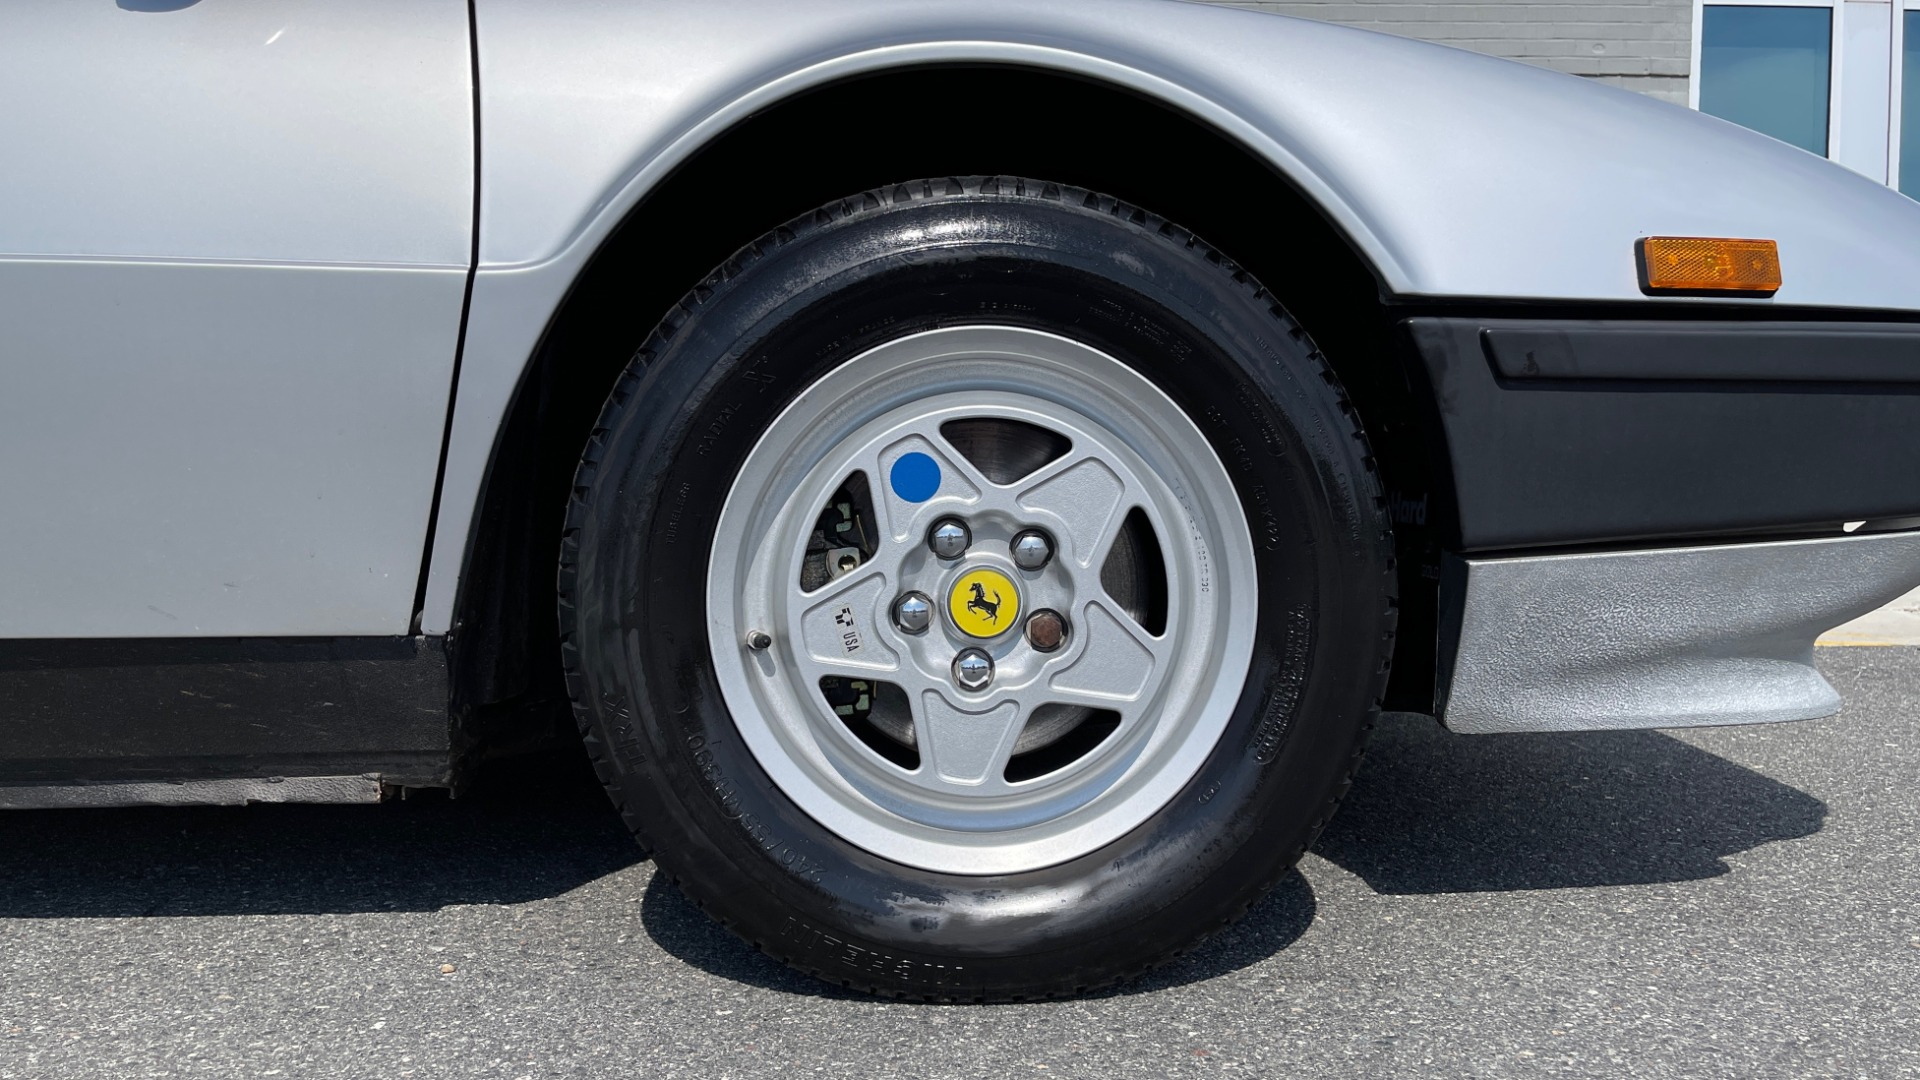 Used 1984 Ferrari MONDIAL 2+2 CABRIOLET / MID-ENGINE 3.0L V8 240HP / 5-SPEED MANUAL / LOW MILES for sale Call for price at Formula Imports in Charlotte NC 28227 79